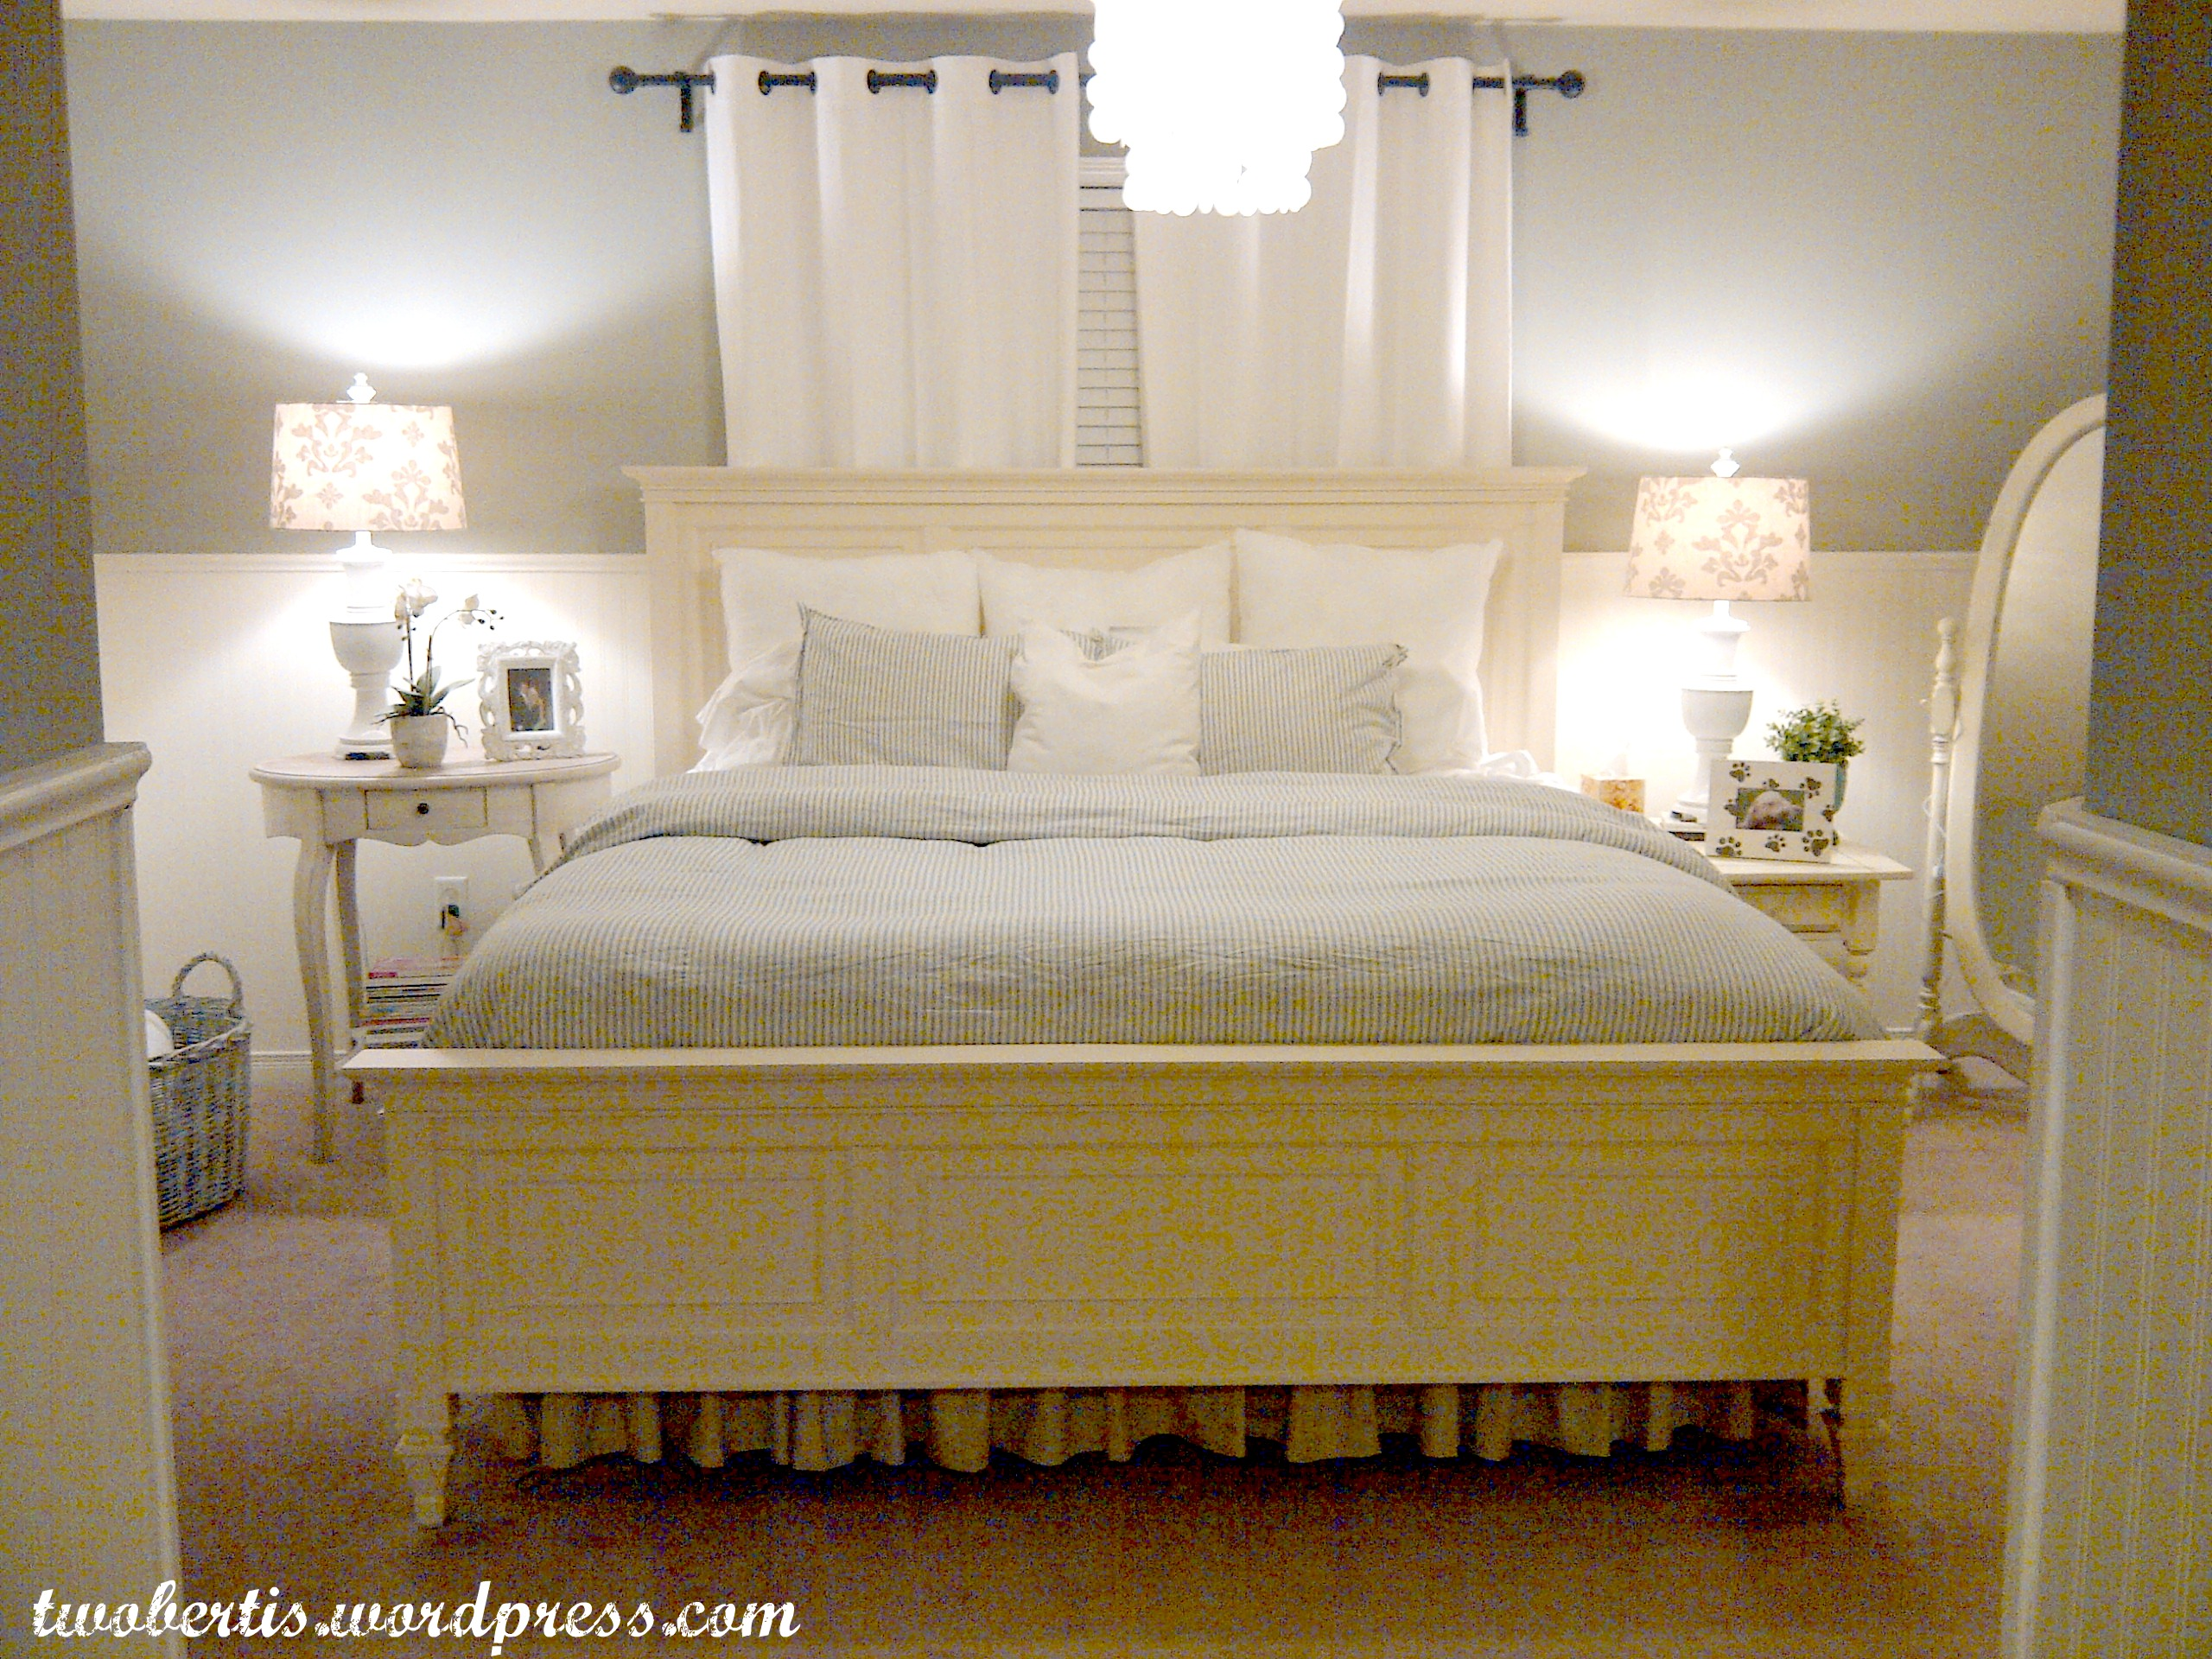 Supple Remodelaholic Pottery Barn Inspired Master Bedroom Makeover Pottery Barn Bed Pillows Pottery Barn Bedroom Furniture baby Pottery Barn Bed